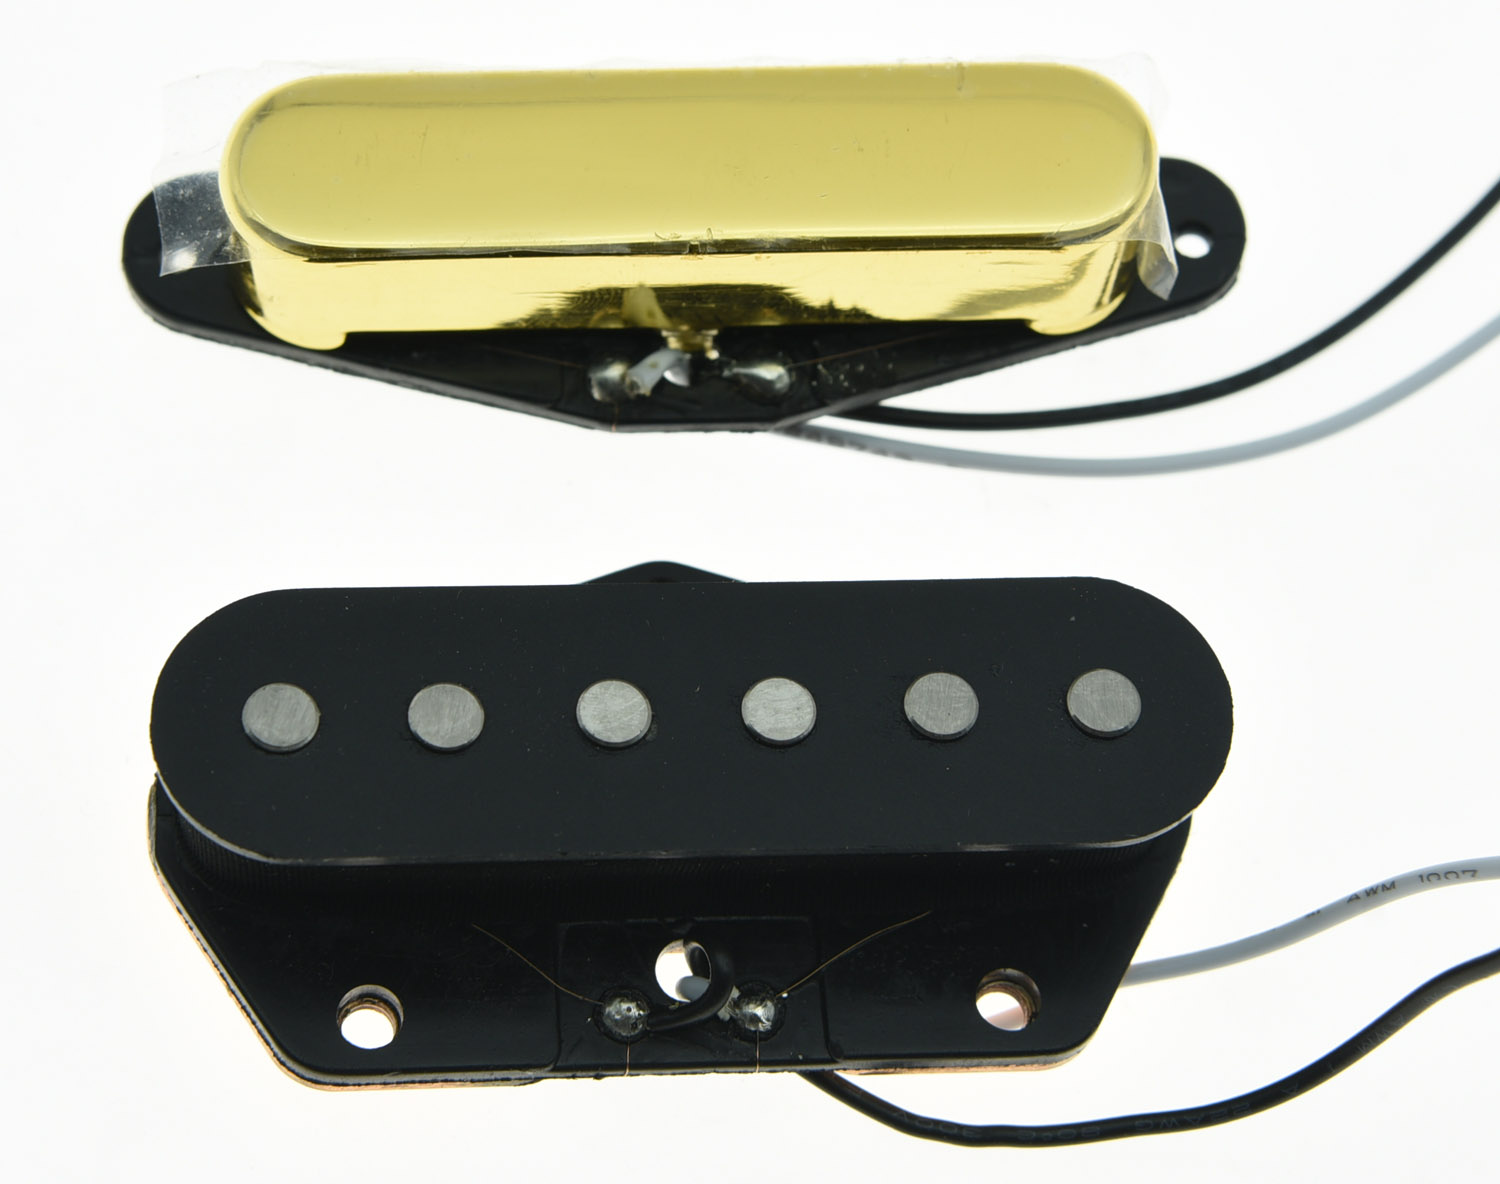 Set of 2 Vintage Sound Pickup Alnico 5 Tele Pickups Set Fits for Telecaster Gold эспадрильи michael michael kors michael michael kors mi048awtbz32